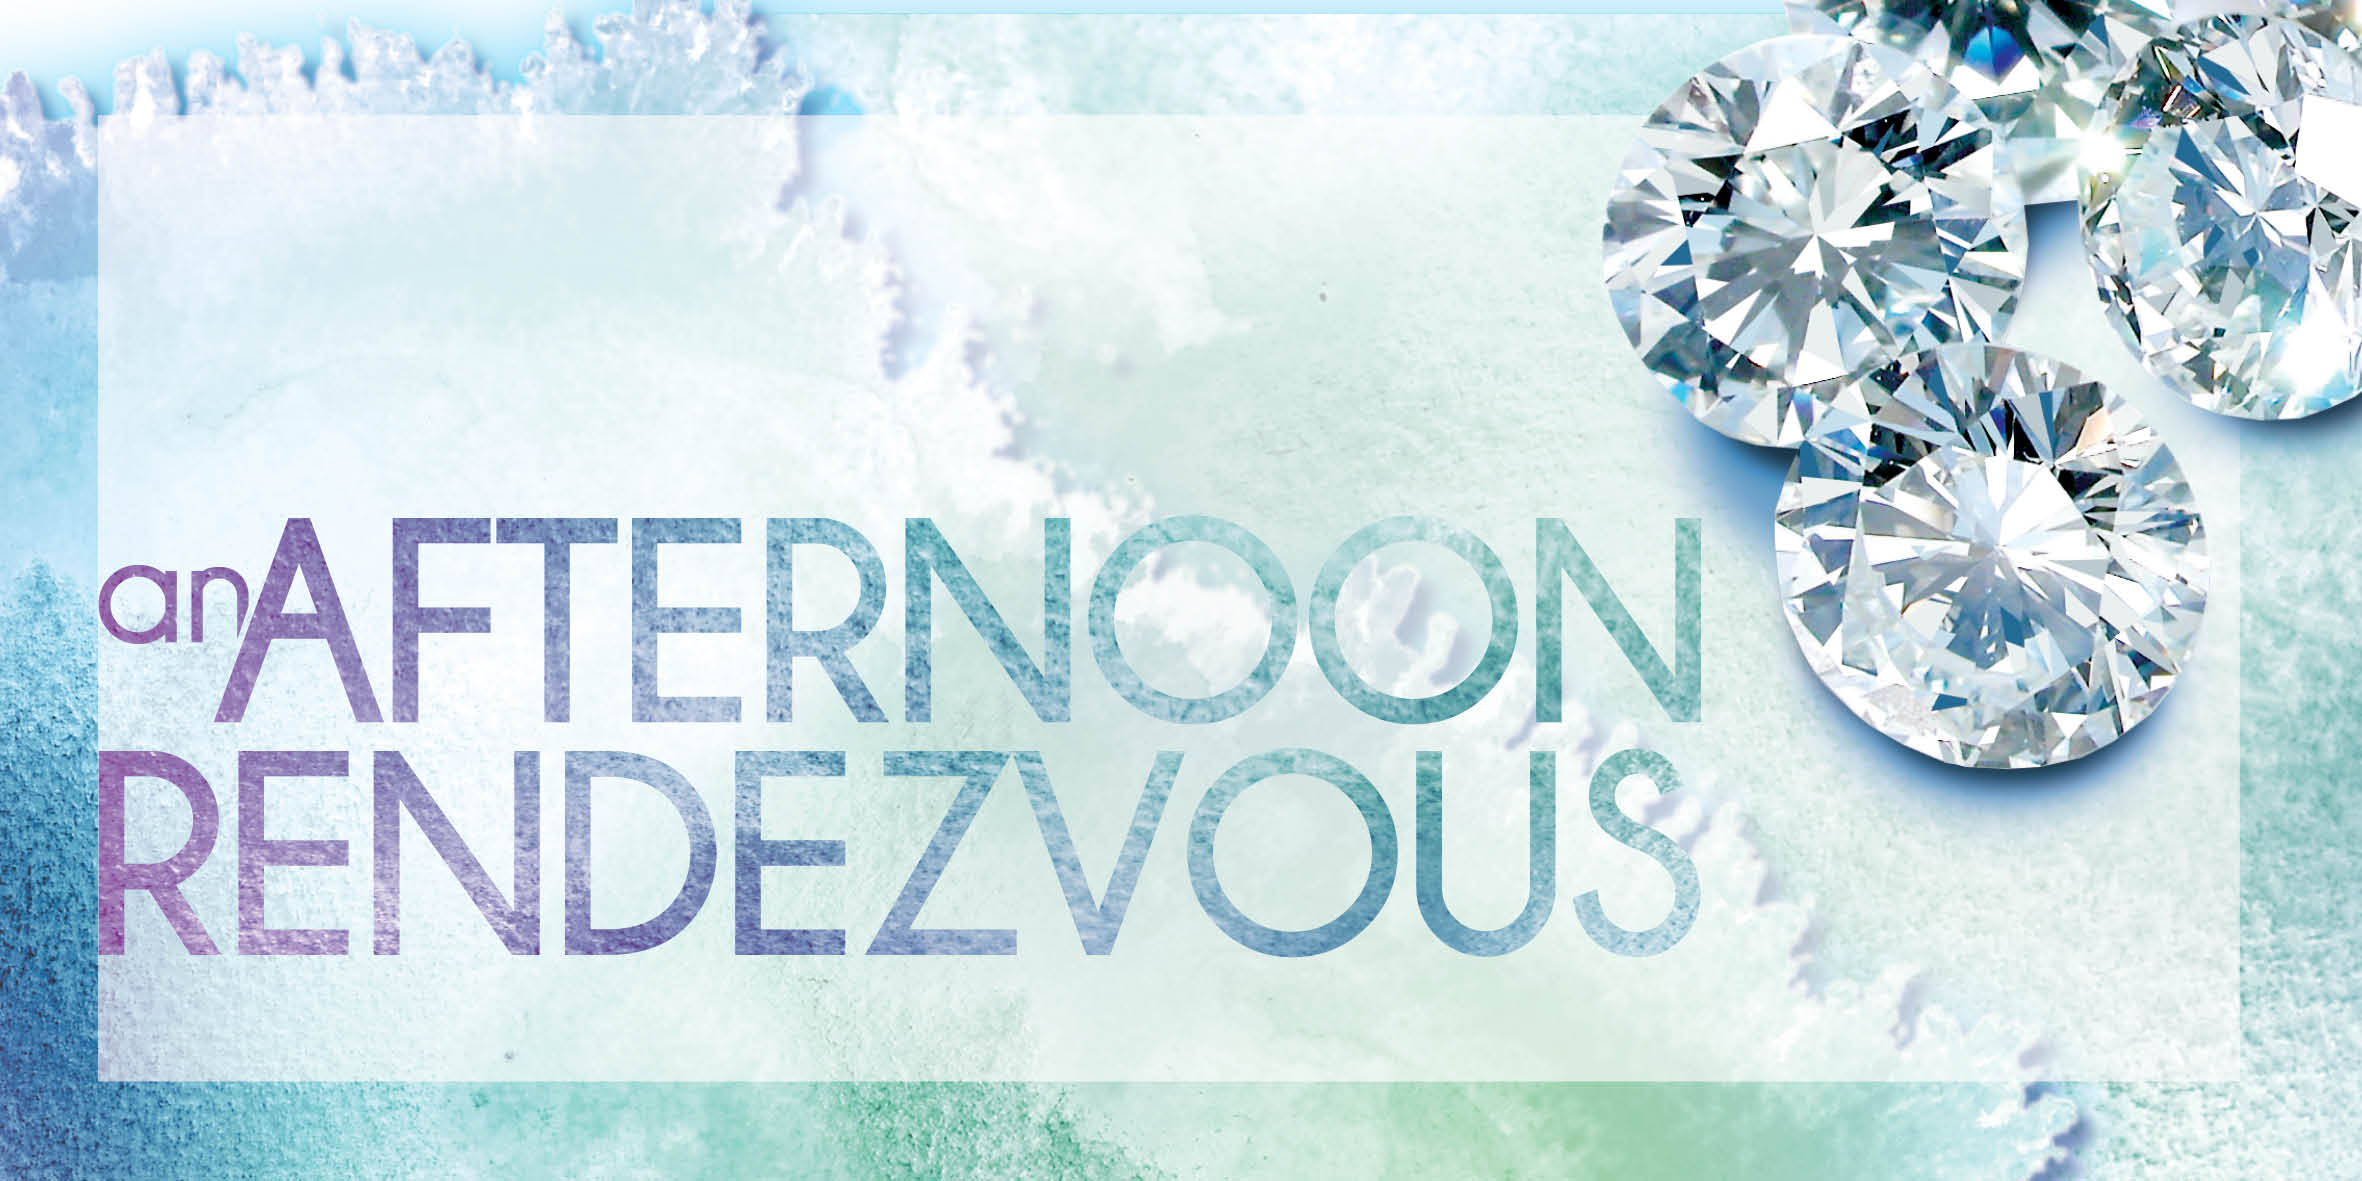 an-afternoon-rendezvous